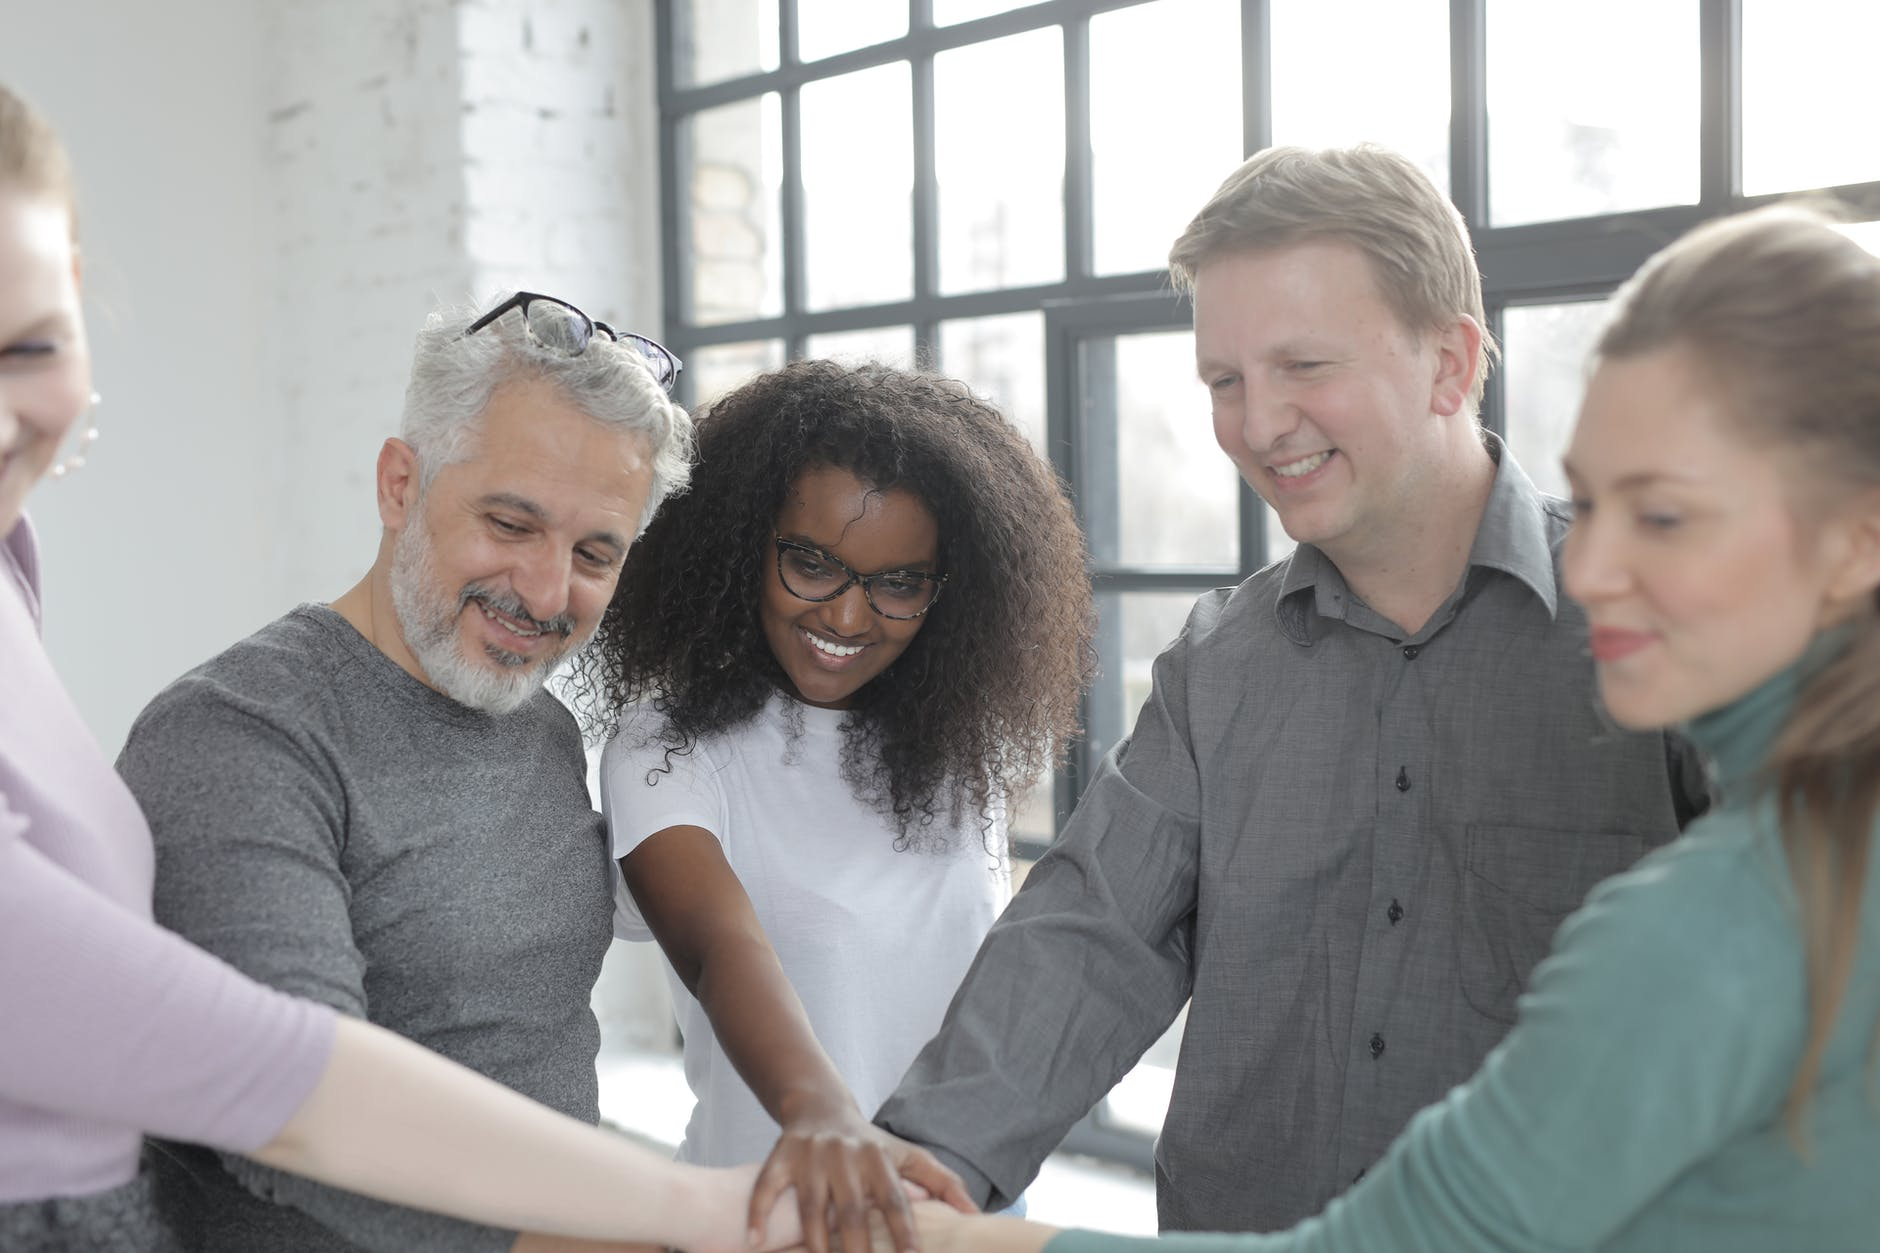 happy diverse colleagues joining hands at work in afternoon